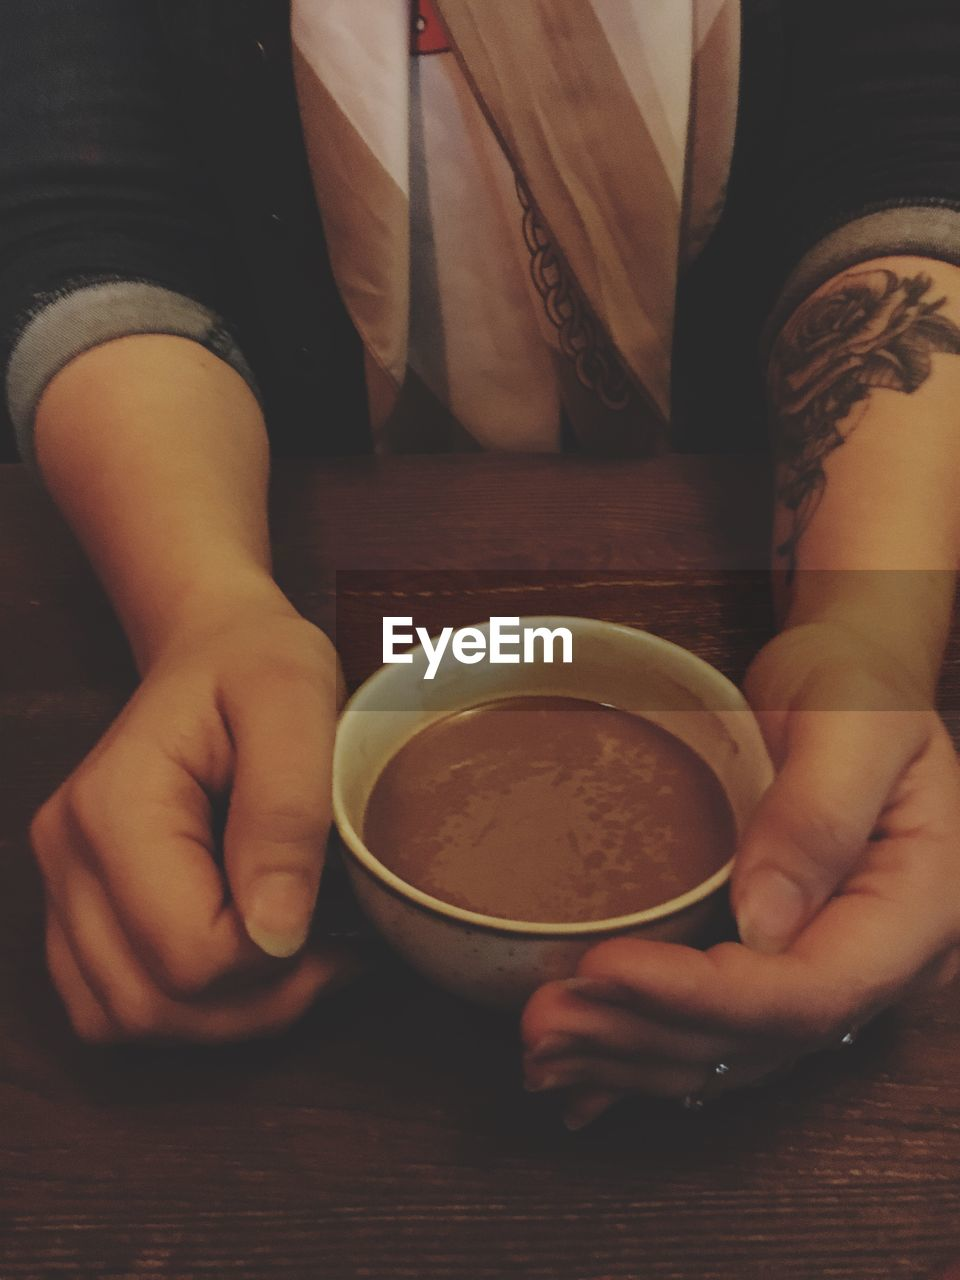 food and drink, indoors, holding, one person, table, human hand, real people, midsection, freshness, bowl, food, human body part, refreshment, drink, healthy eating, lifestyles, close-up, women, day, ready-to-eat, people